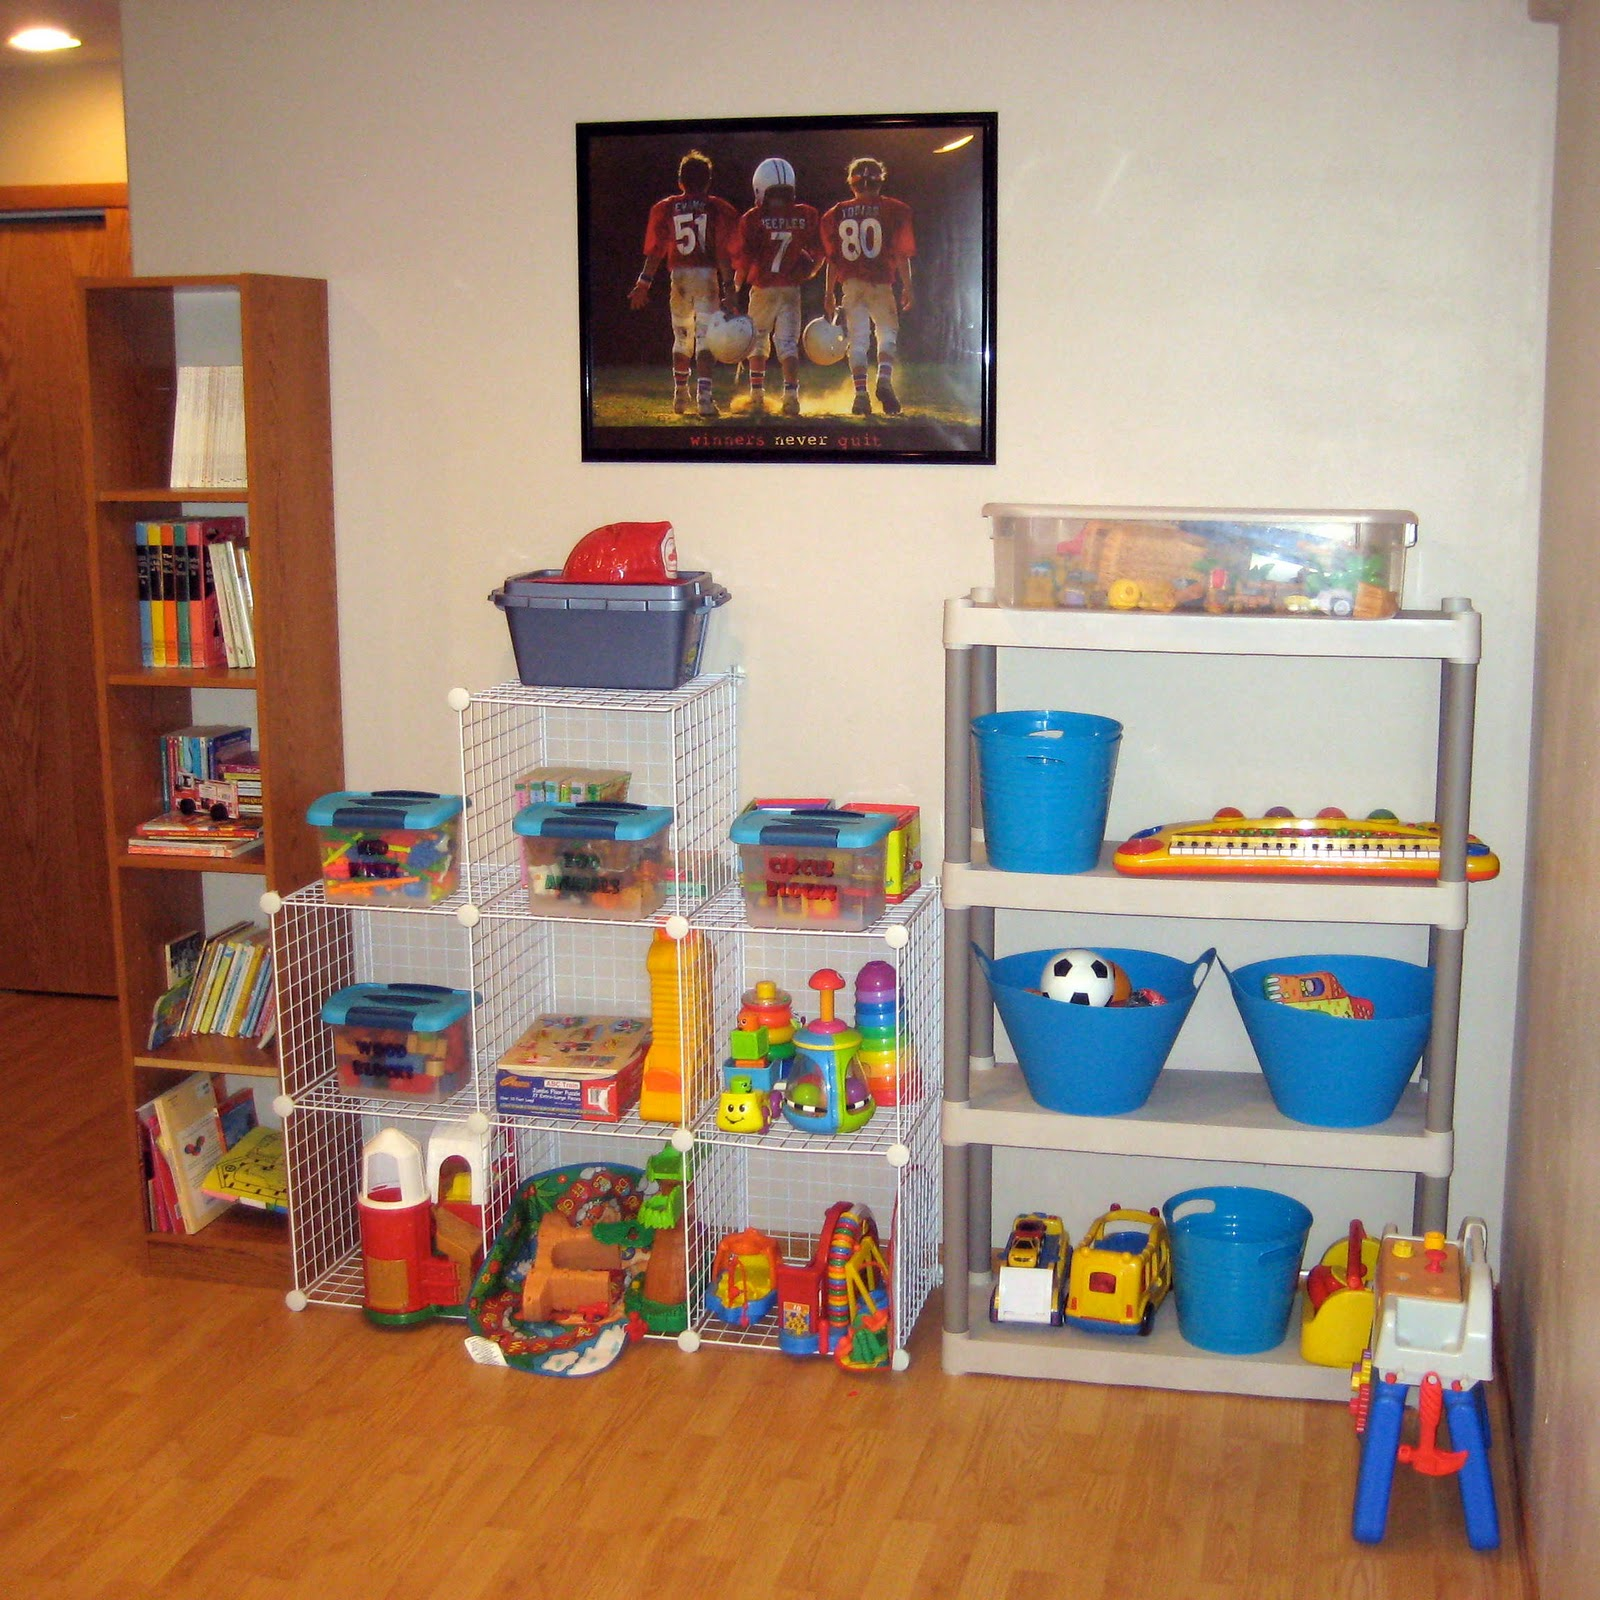 Organizing Toy Room Ideas Pictures | Joy Studio Design ...